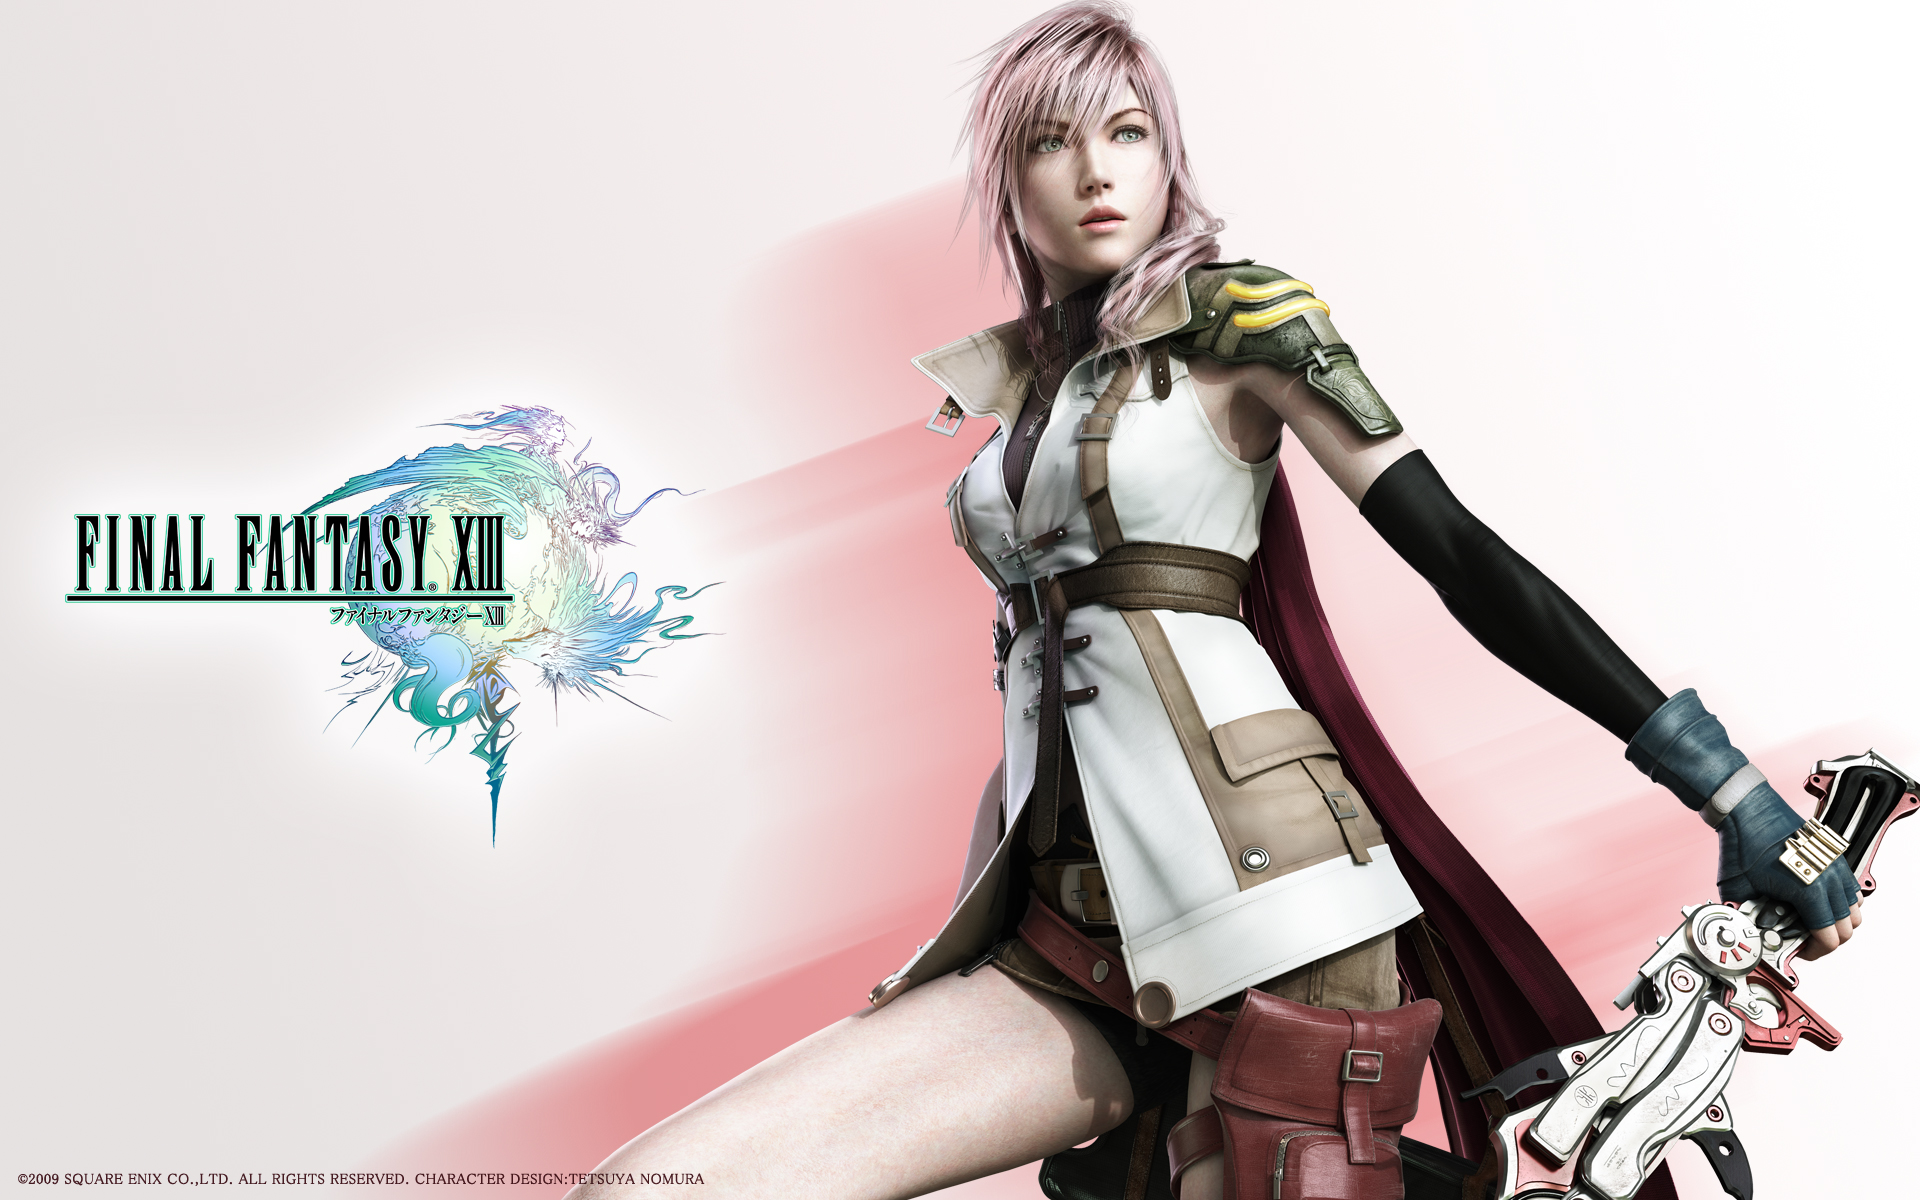 Gamer Able To Transfer Final Fantasy XIII Cutscenes From PS3